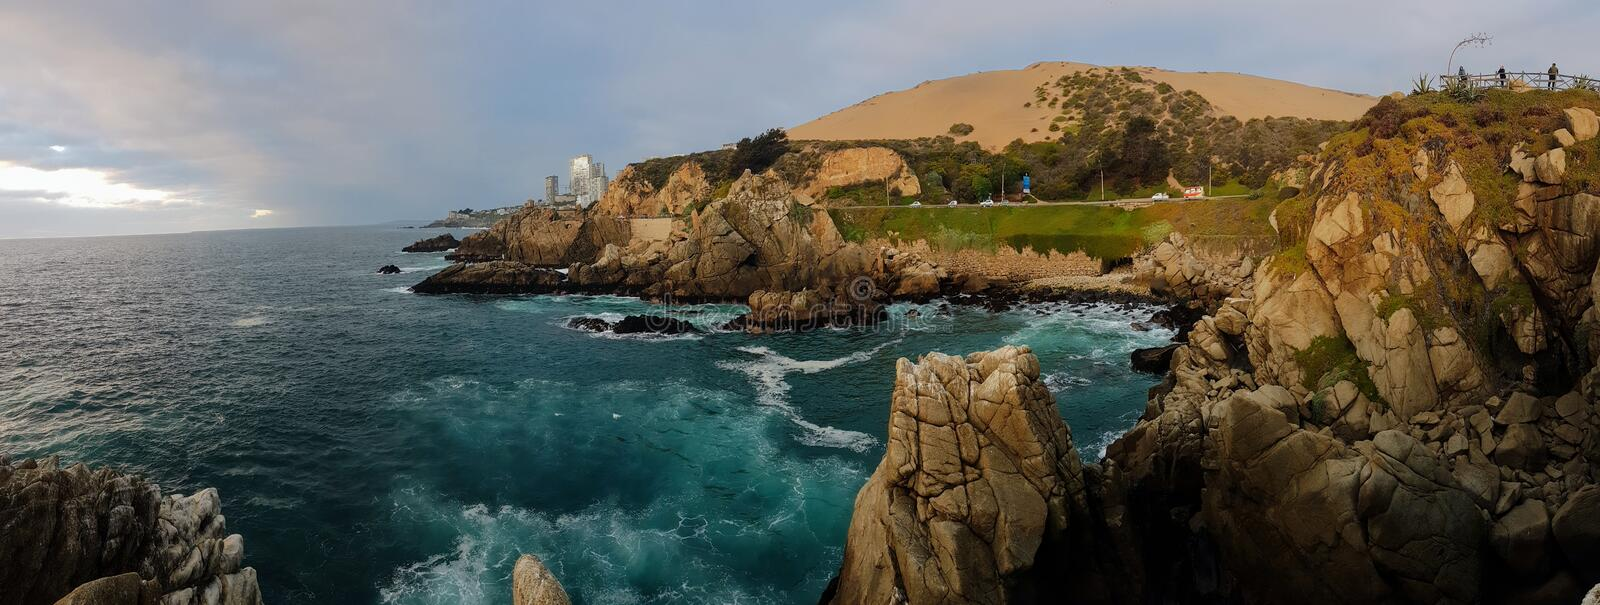 Evening light at the coast. Sea, tuquis, turquise, water, rocks, chile, valparaiso, travel, sunset royalty free stock photo